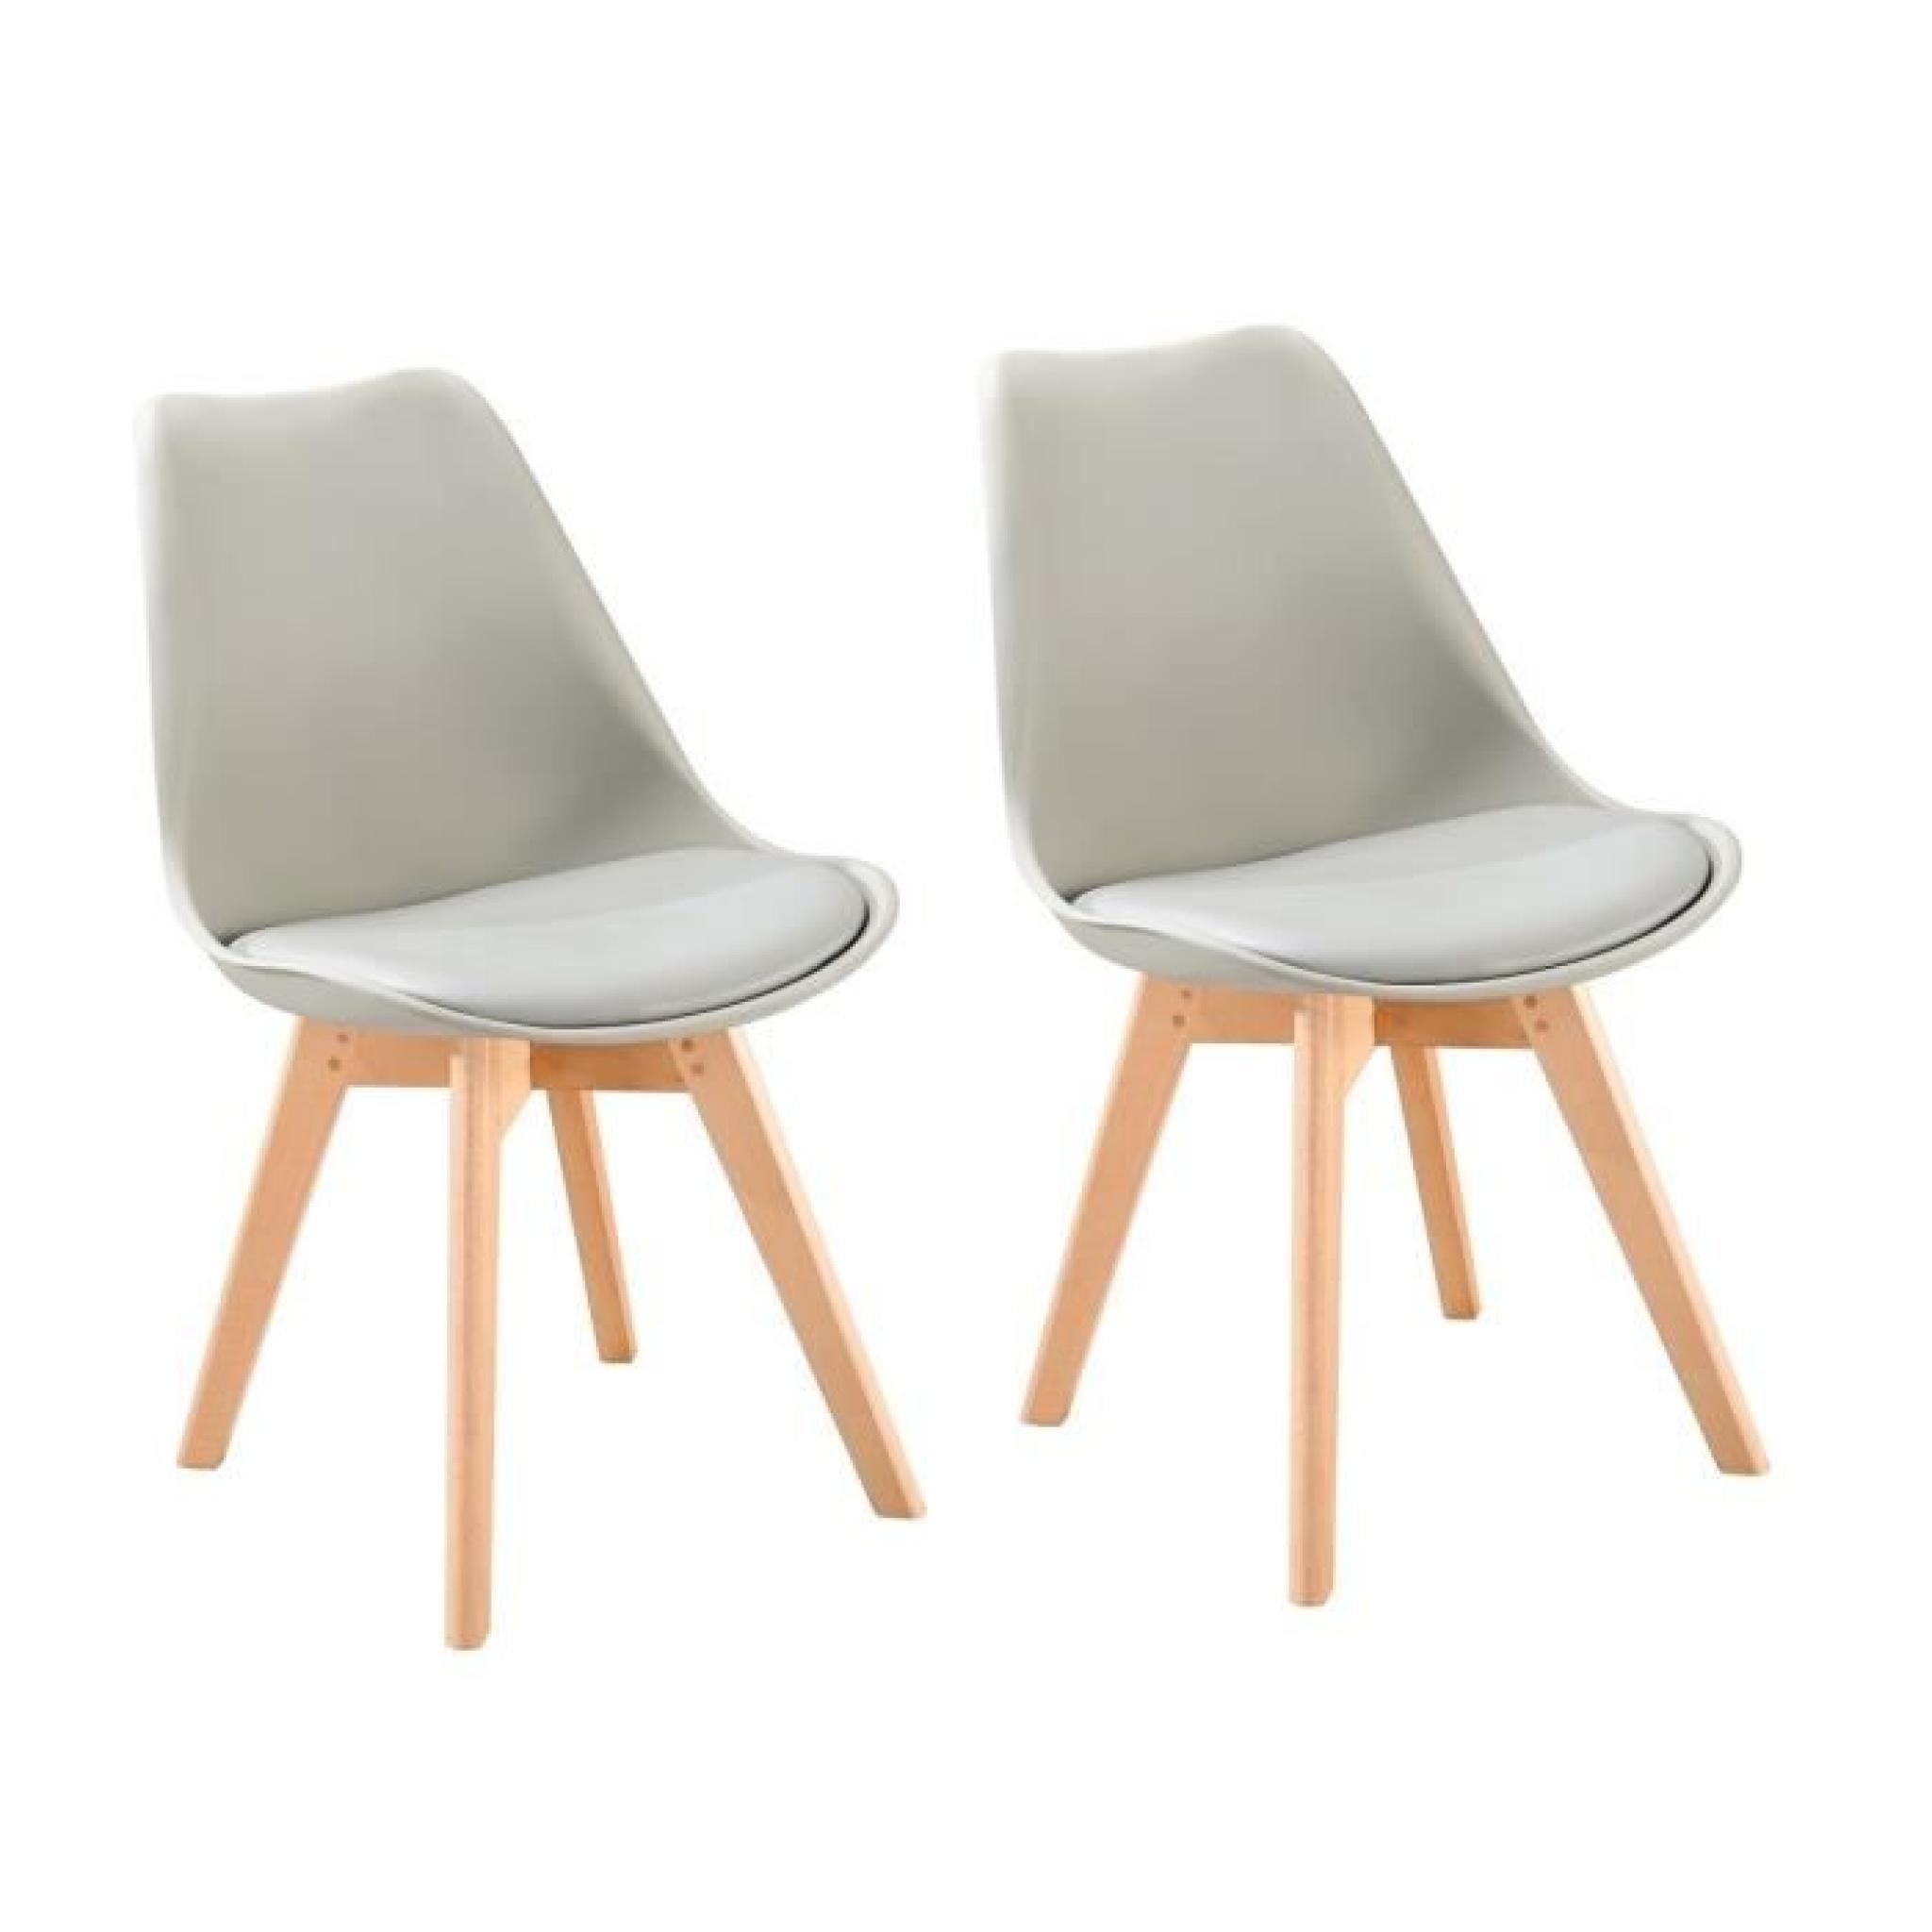 Bjorn lot de 2 chaises scandinaves de salle manger for 6 chaises scandinaves